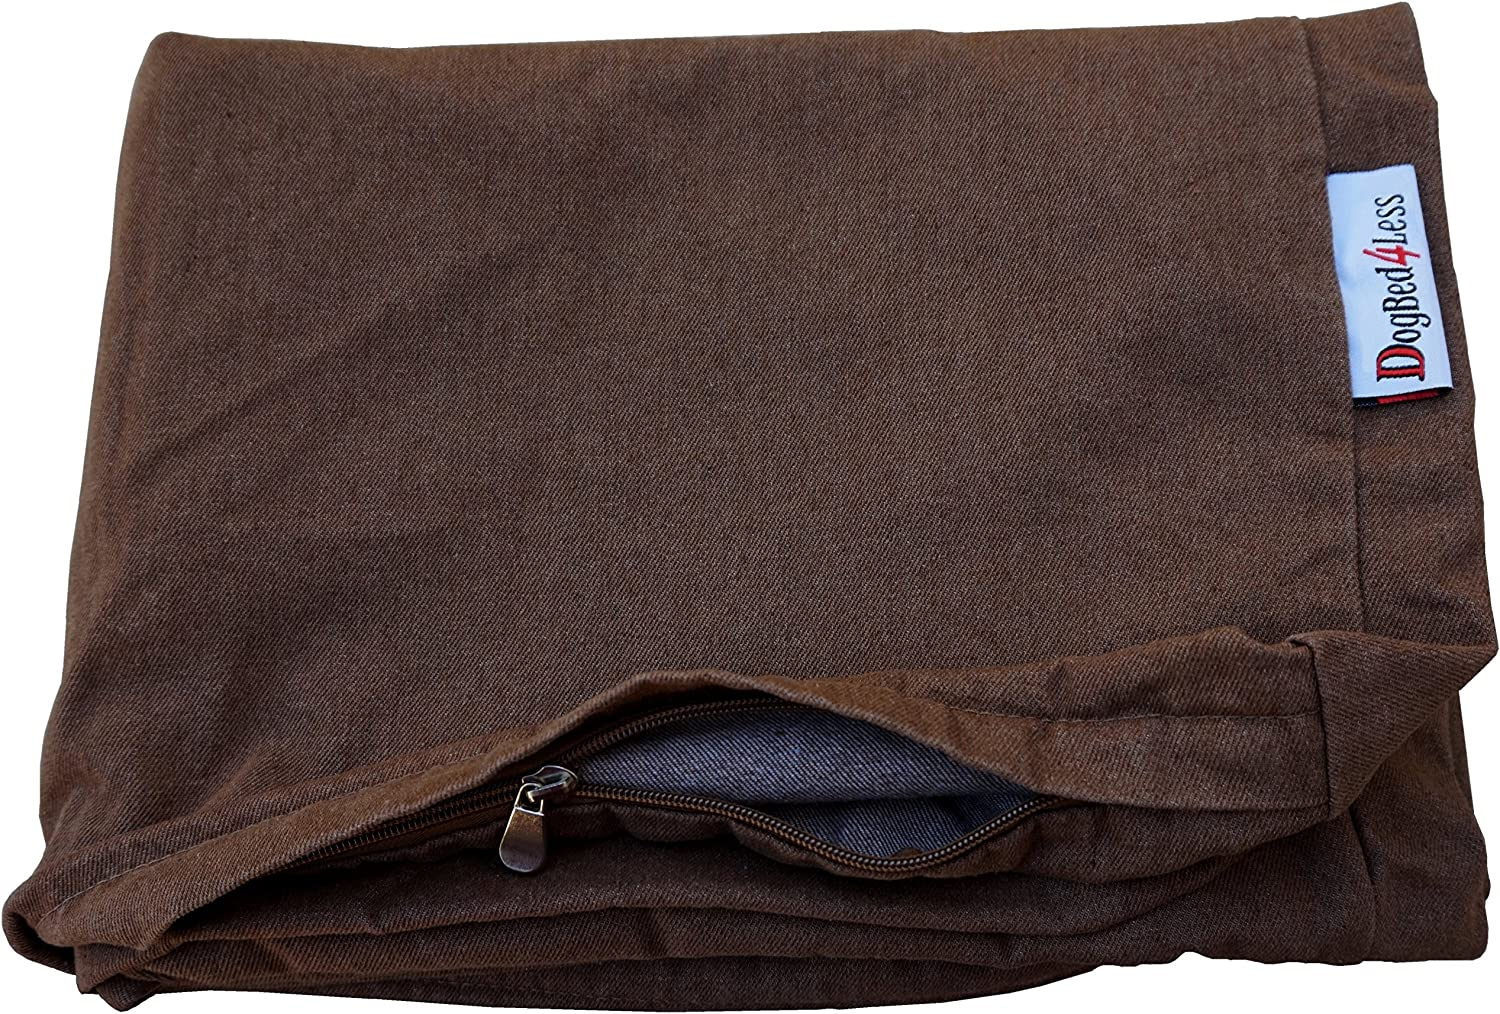 Dogbed4less 55X37X4 Inches Brown Color Denim Jean Dog Pet Bed External Zipper Cover - Replacement Cover only : Pet Supplies